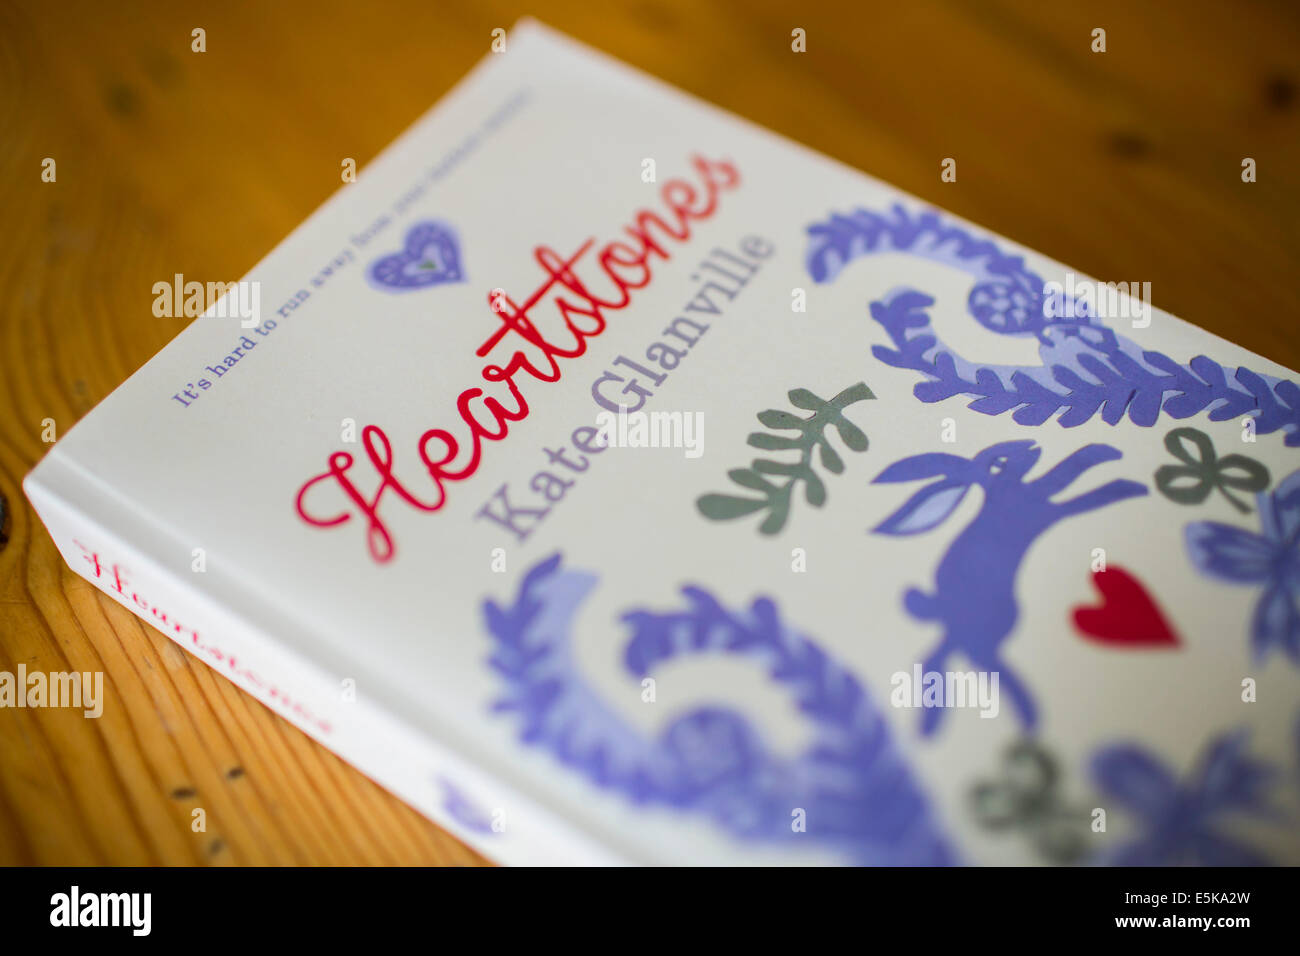 The book 'Heartstones' written by Kate Glanville. - Stock Image